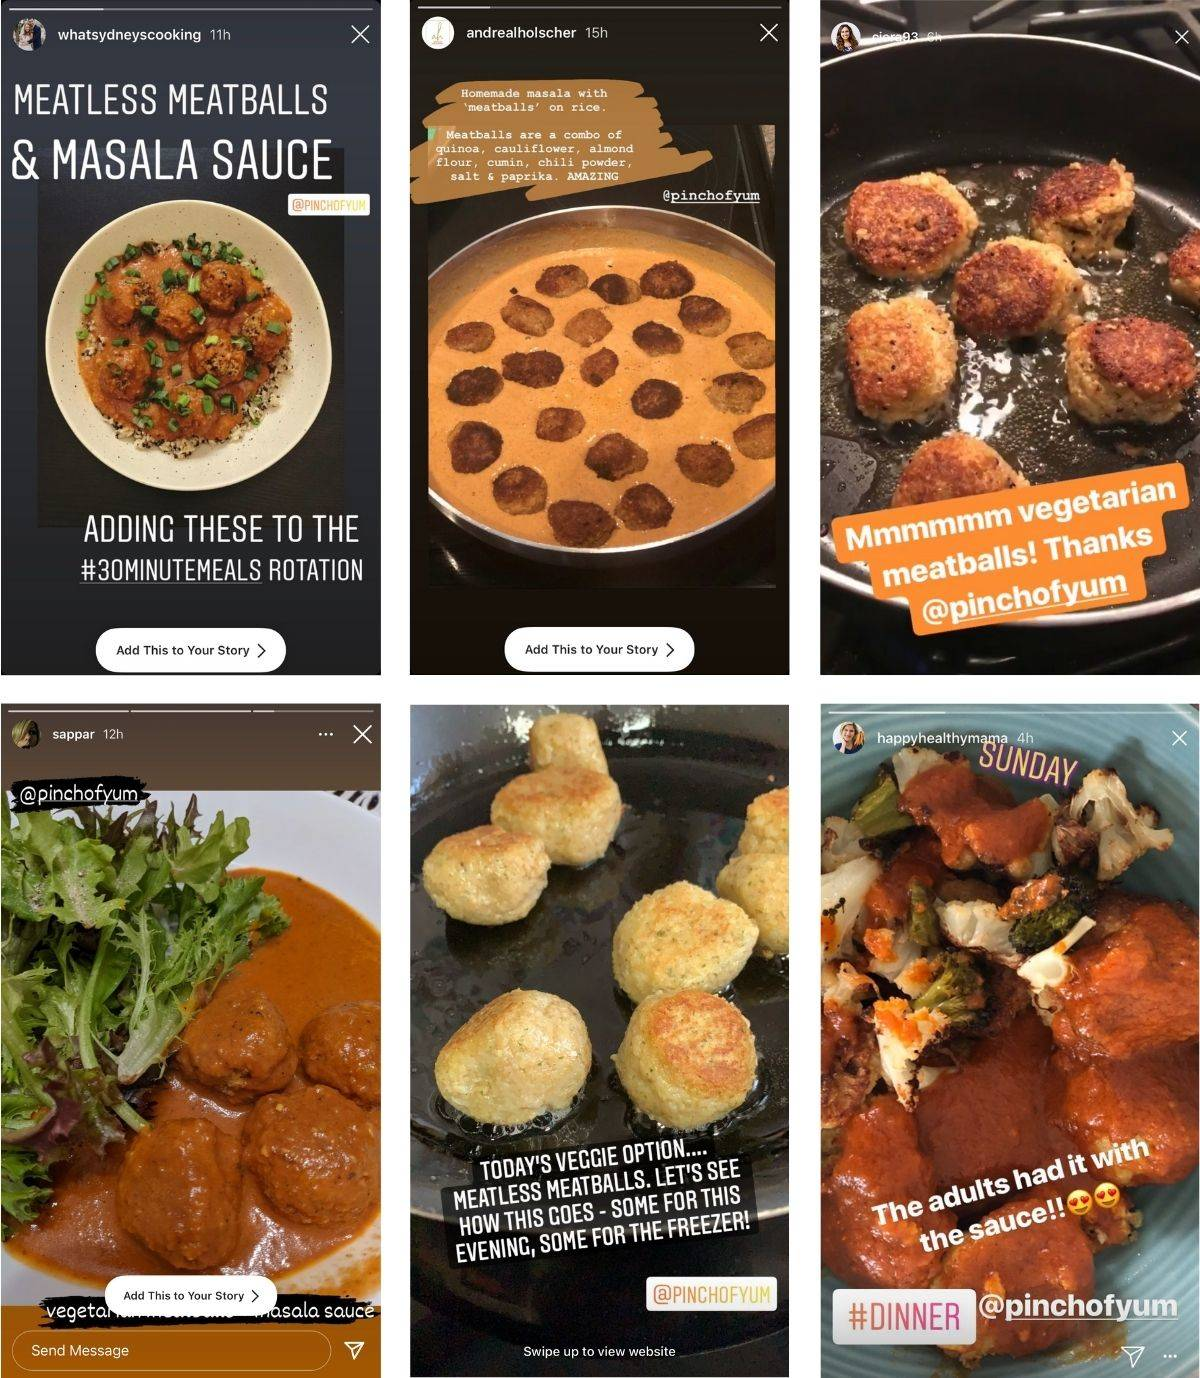 Reader images of the 30 Minute Vegetarian Meatballs recipe.